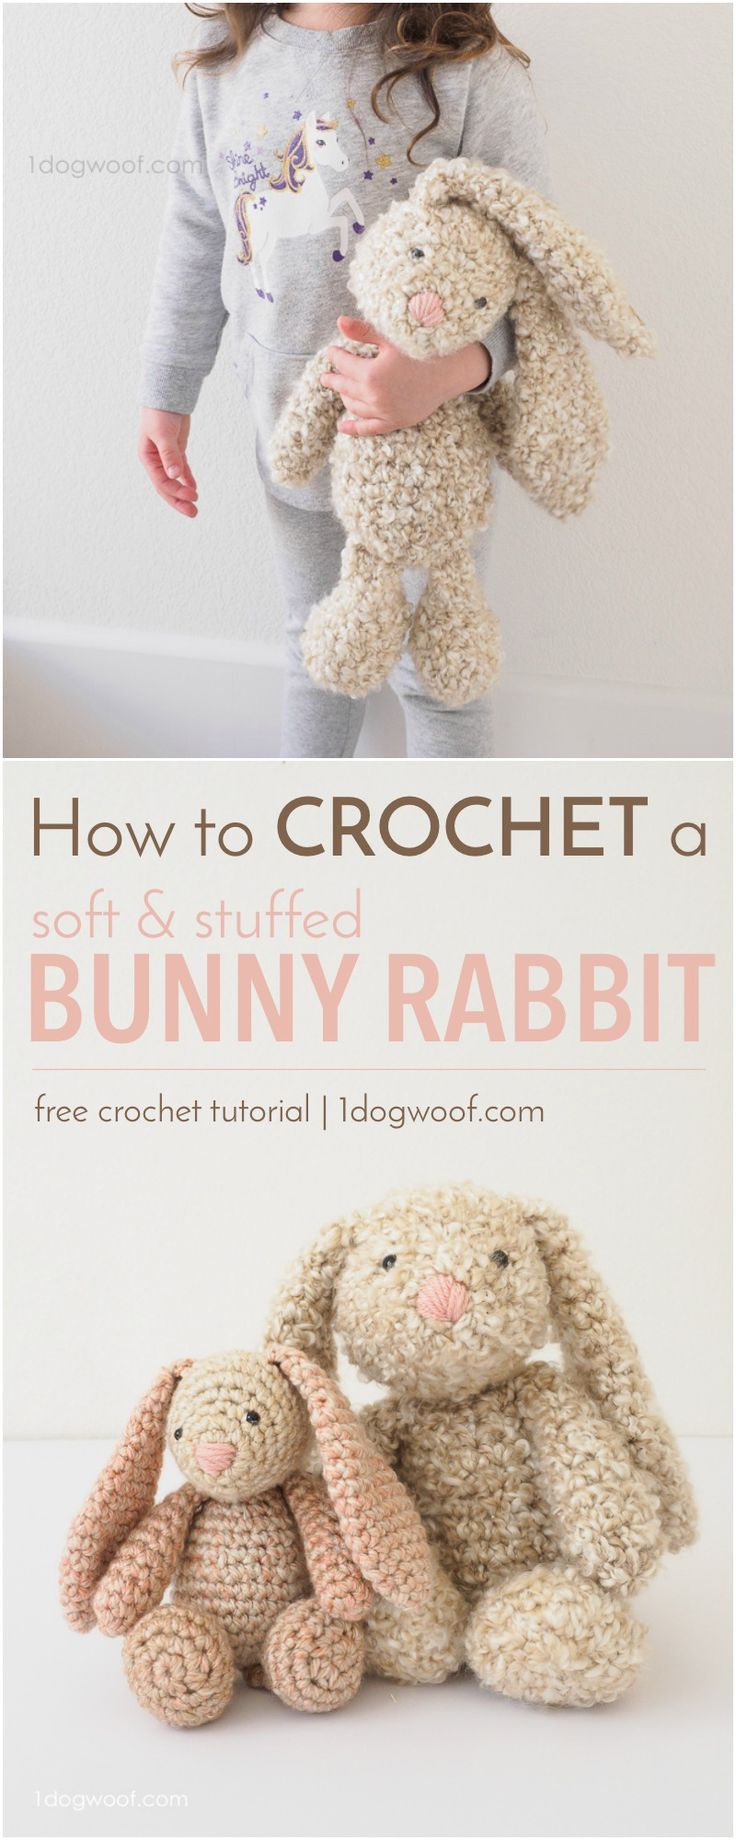 FREE crochet pattern to make a classic stuffed bunny amigurumi. Great for Easter...